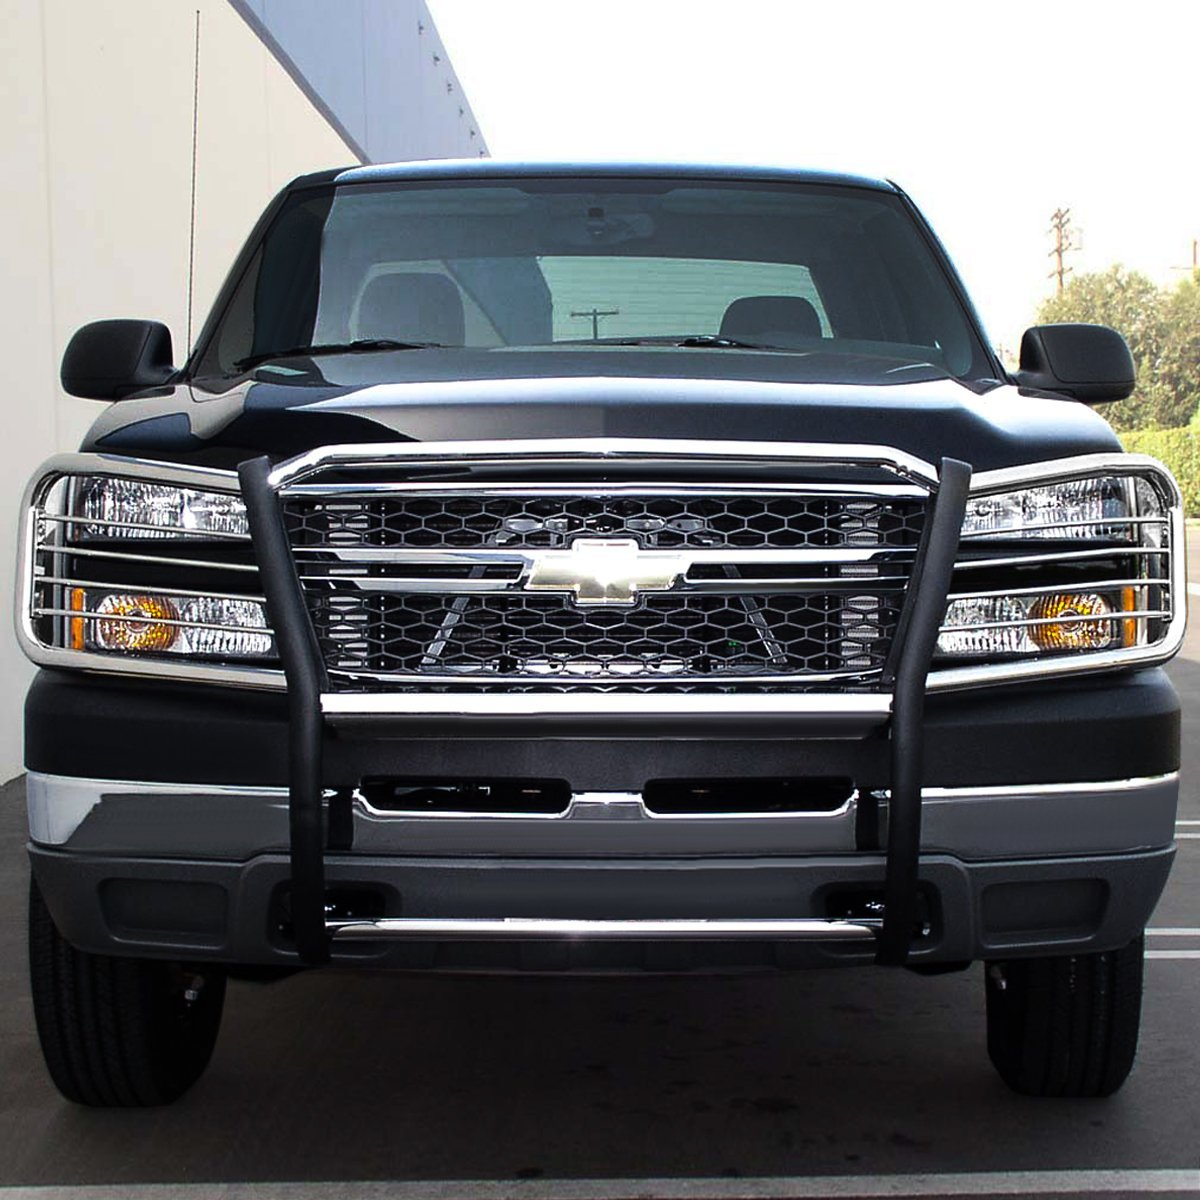 02 06 chevy avalanche with cladding front bumper protector brush grille guard chrome